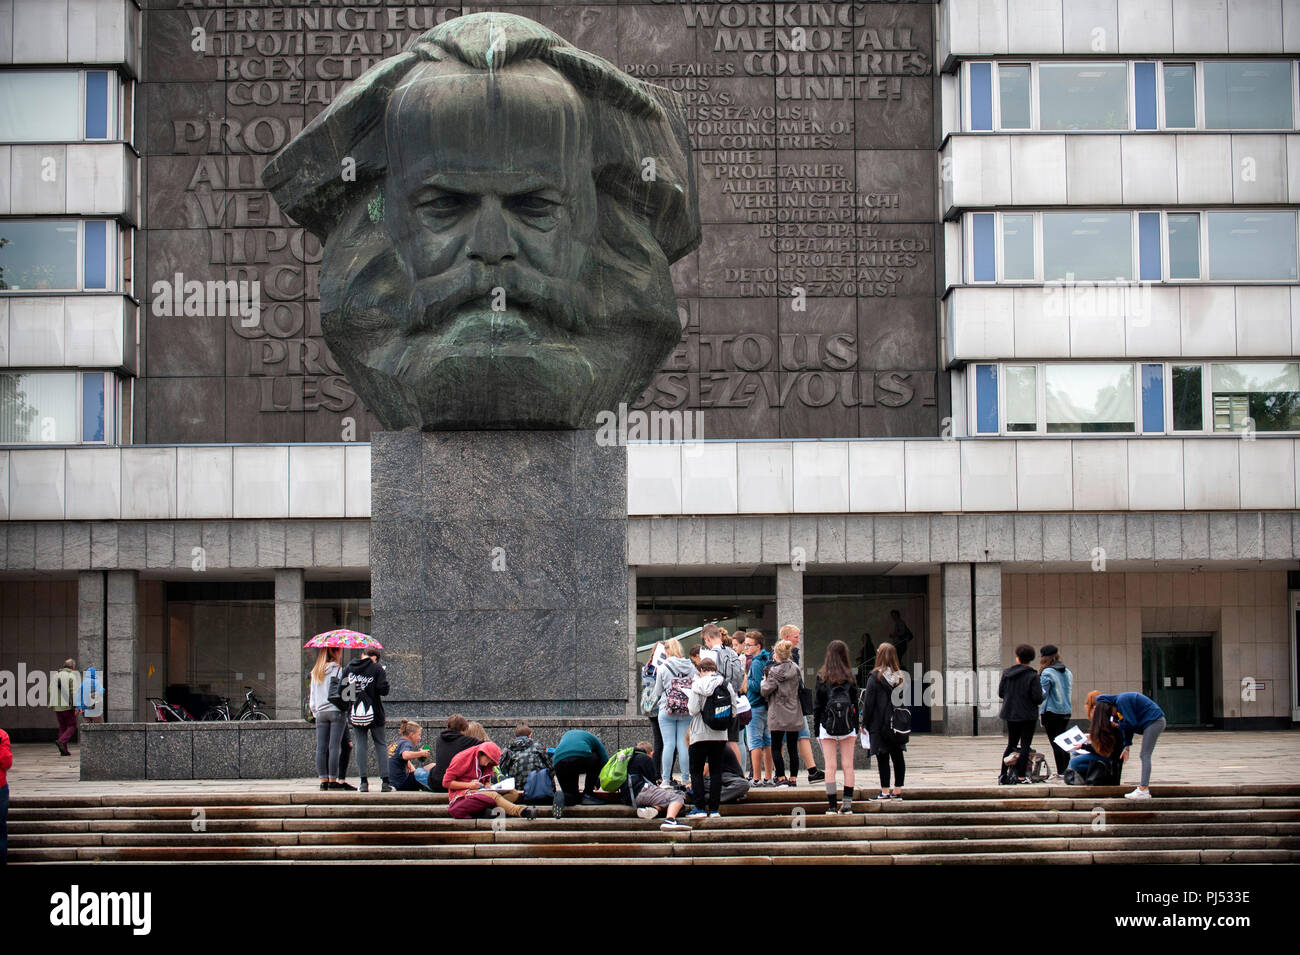 The Karl Marx Monument dominates the surrounding City landscape in the Brückenstrasse in Chemnitz, Germany. - Stock Image